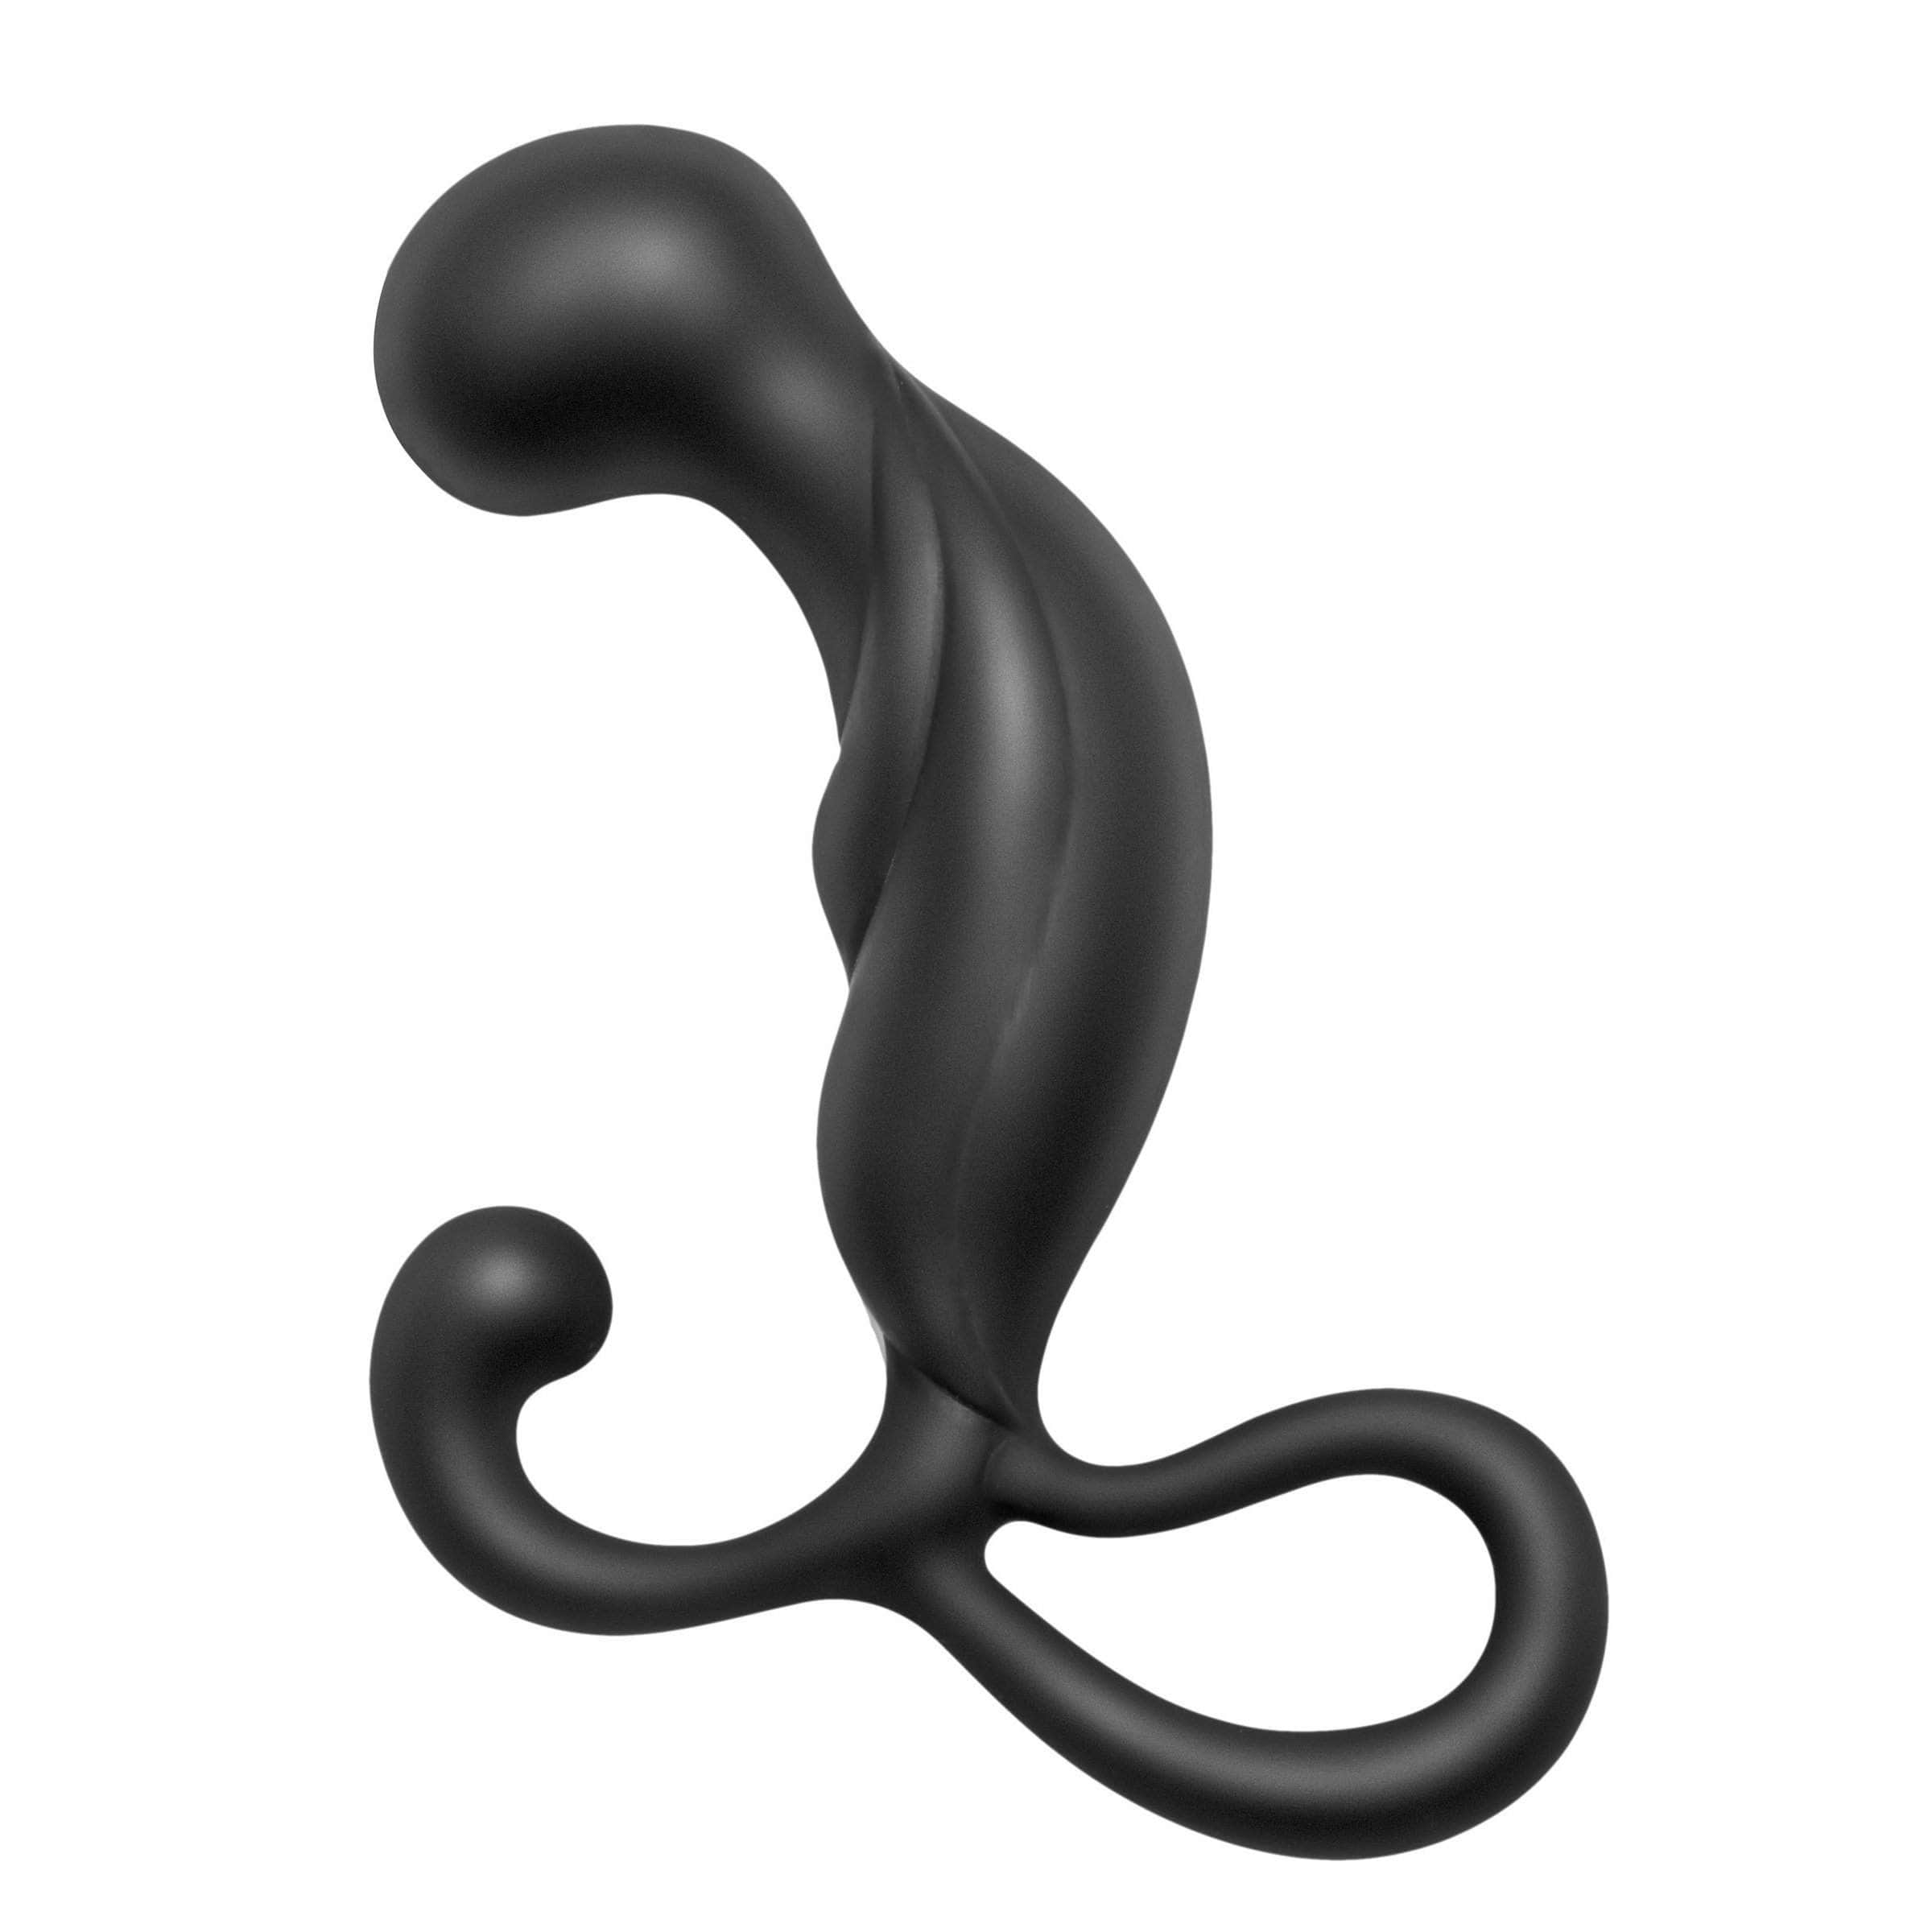 Pathfinder Silicone Prostate Plug With Angled Head